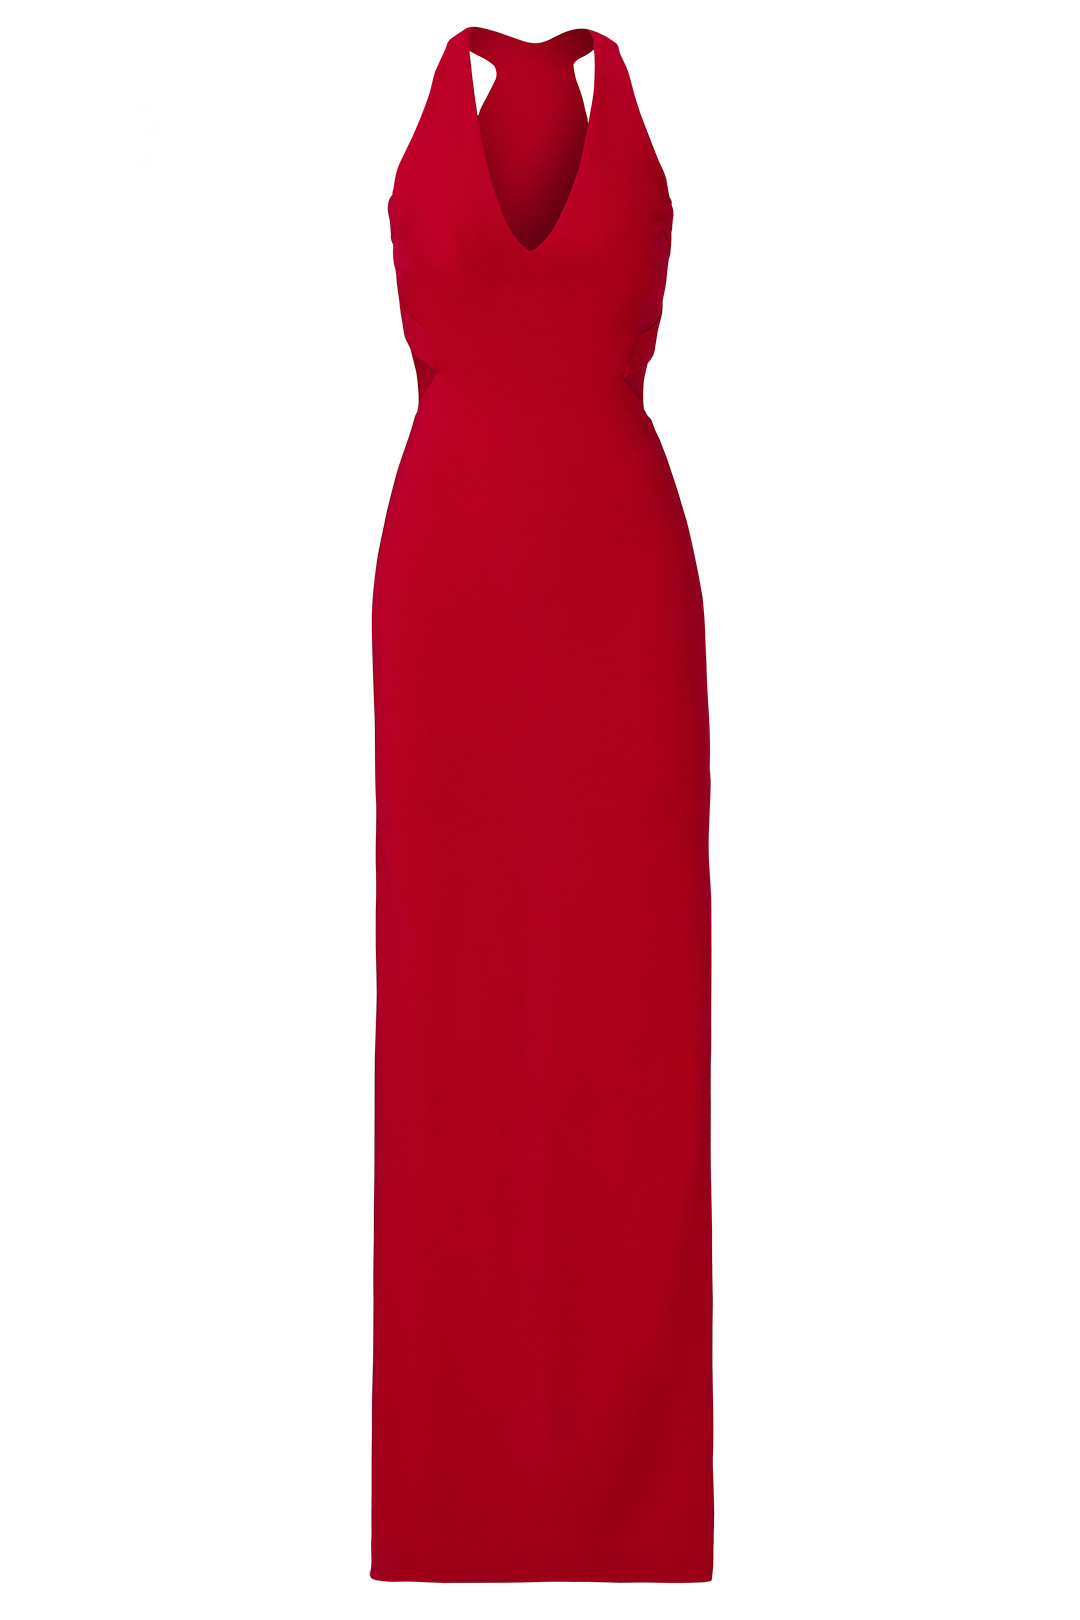 Nicole Miller Red Women\'s Size 4 V-Neck Mesh Illusion Ponte Gown ...